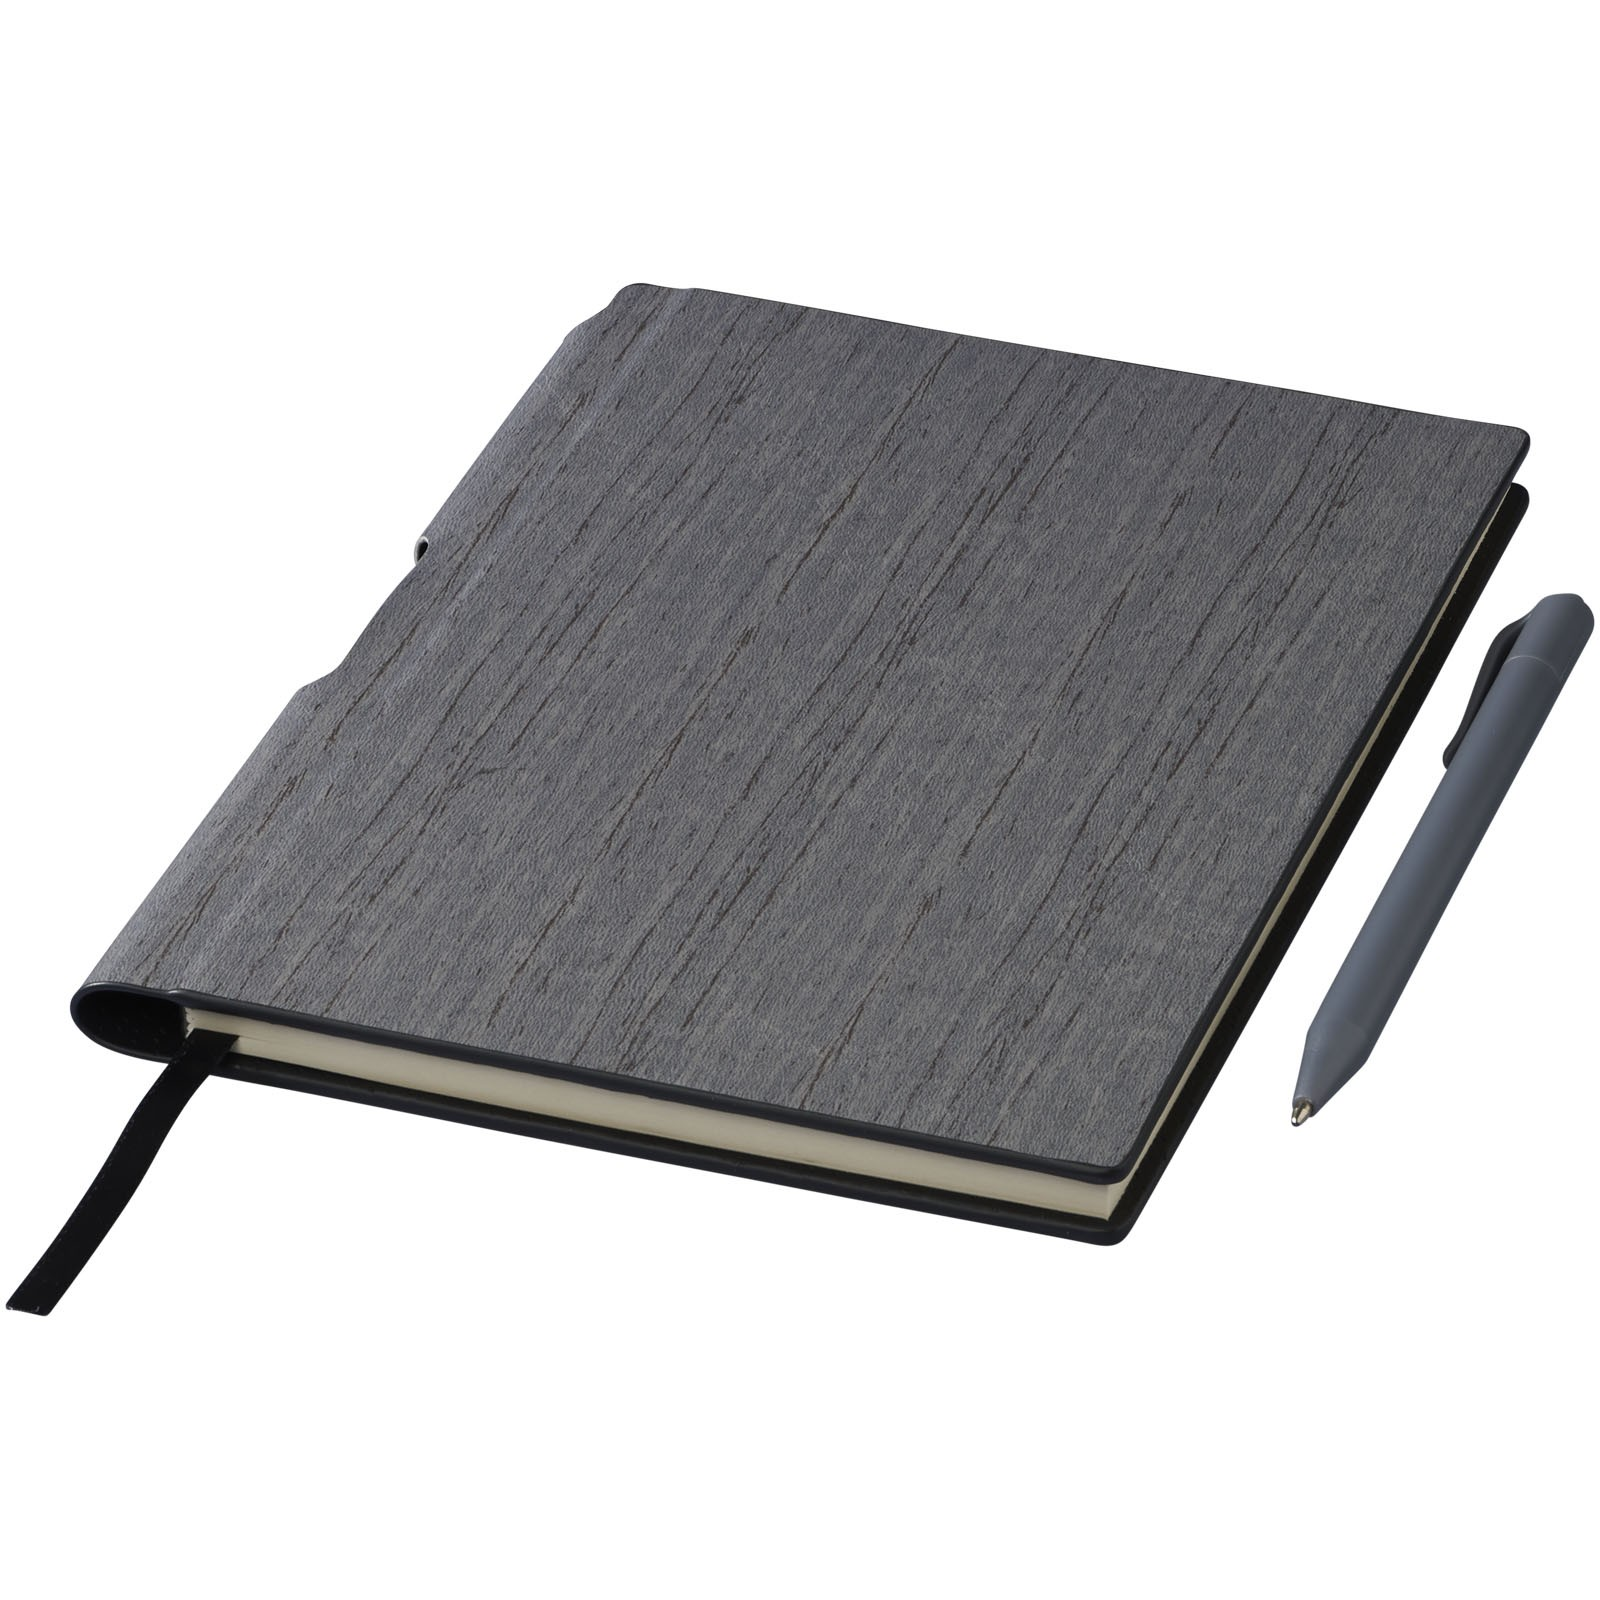 Bardi A5 hard cover notebook - Grey